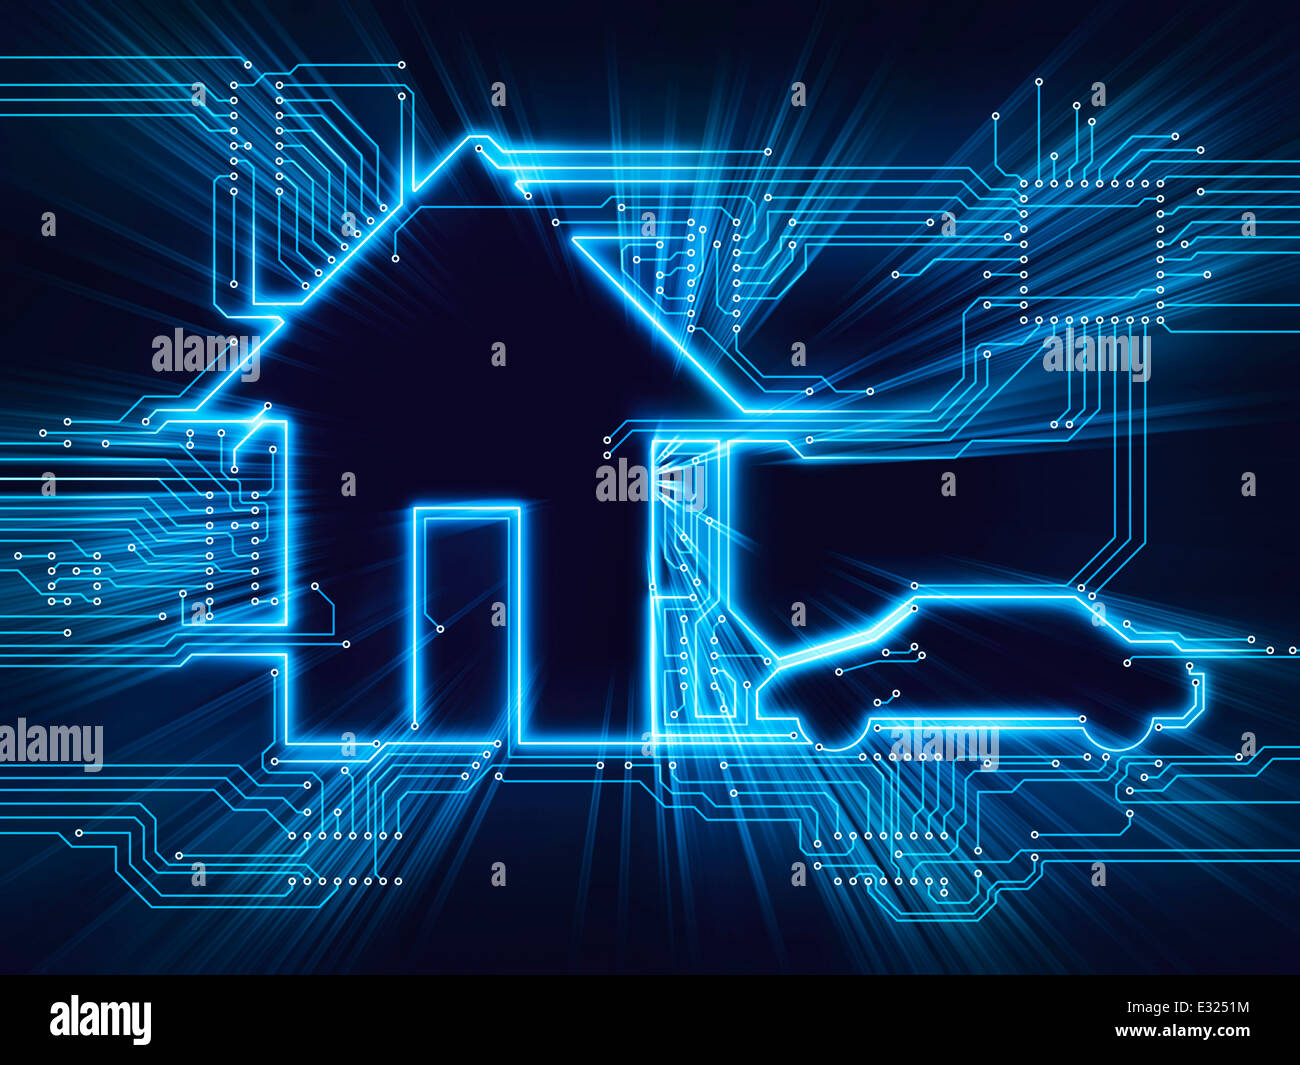 wiring diagram for home automation 4 pin trailer harness connected house and electric car future household stock photo, royalty free ...